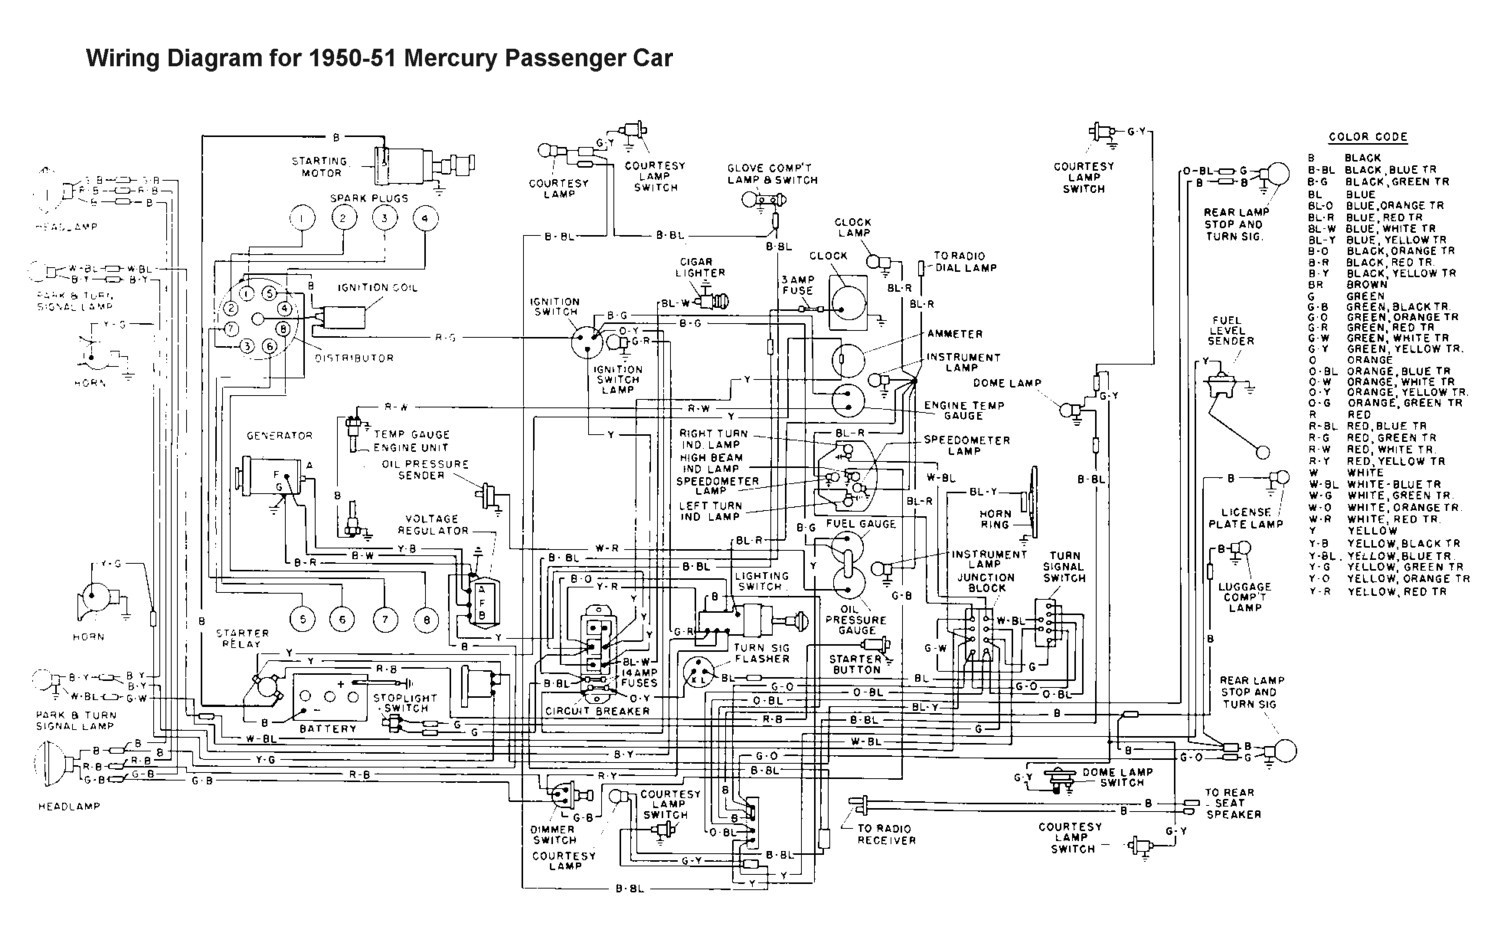 Mercruiser Wiring Schematic Diagram - Smart Wiring Diagrams •